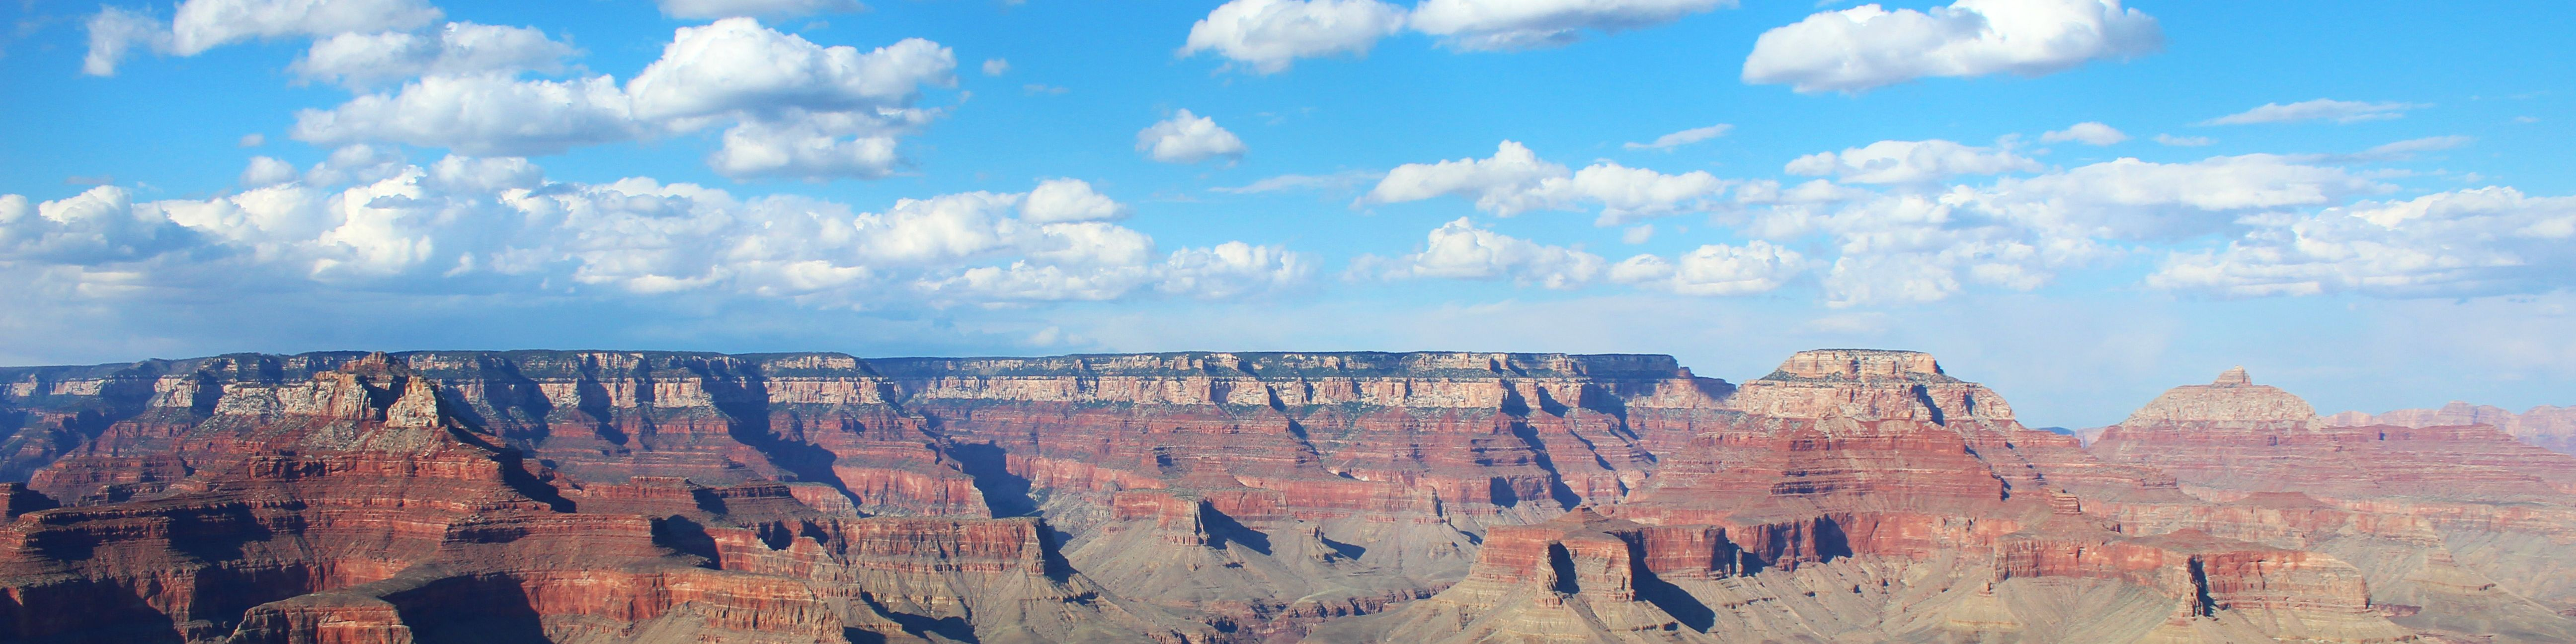 Grand Canyon Weite